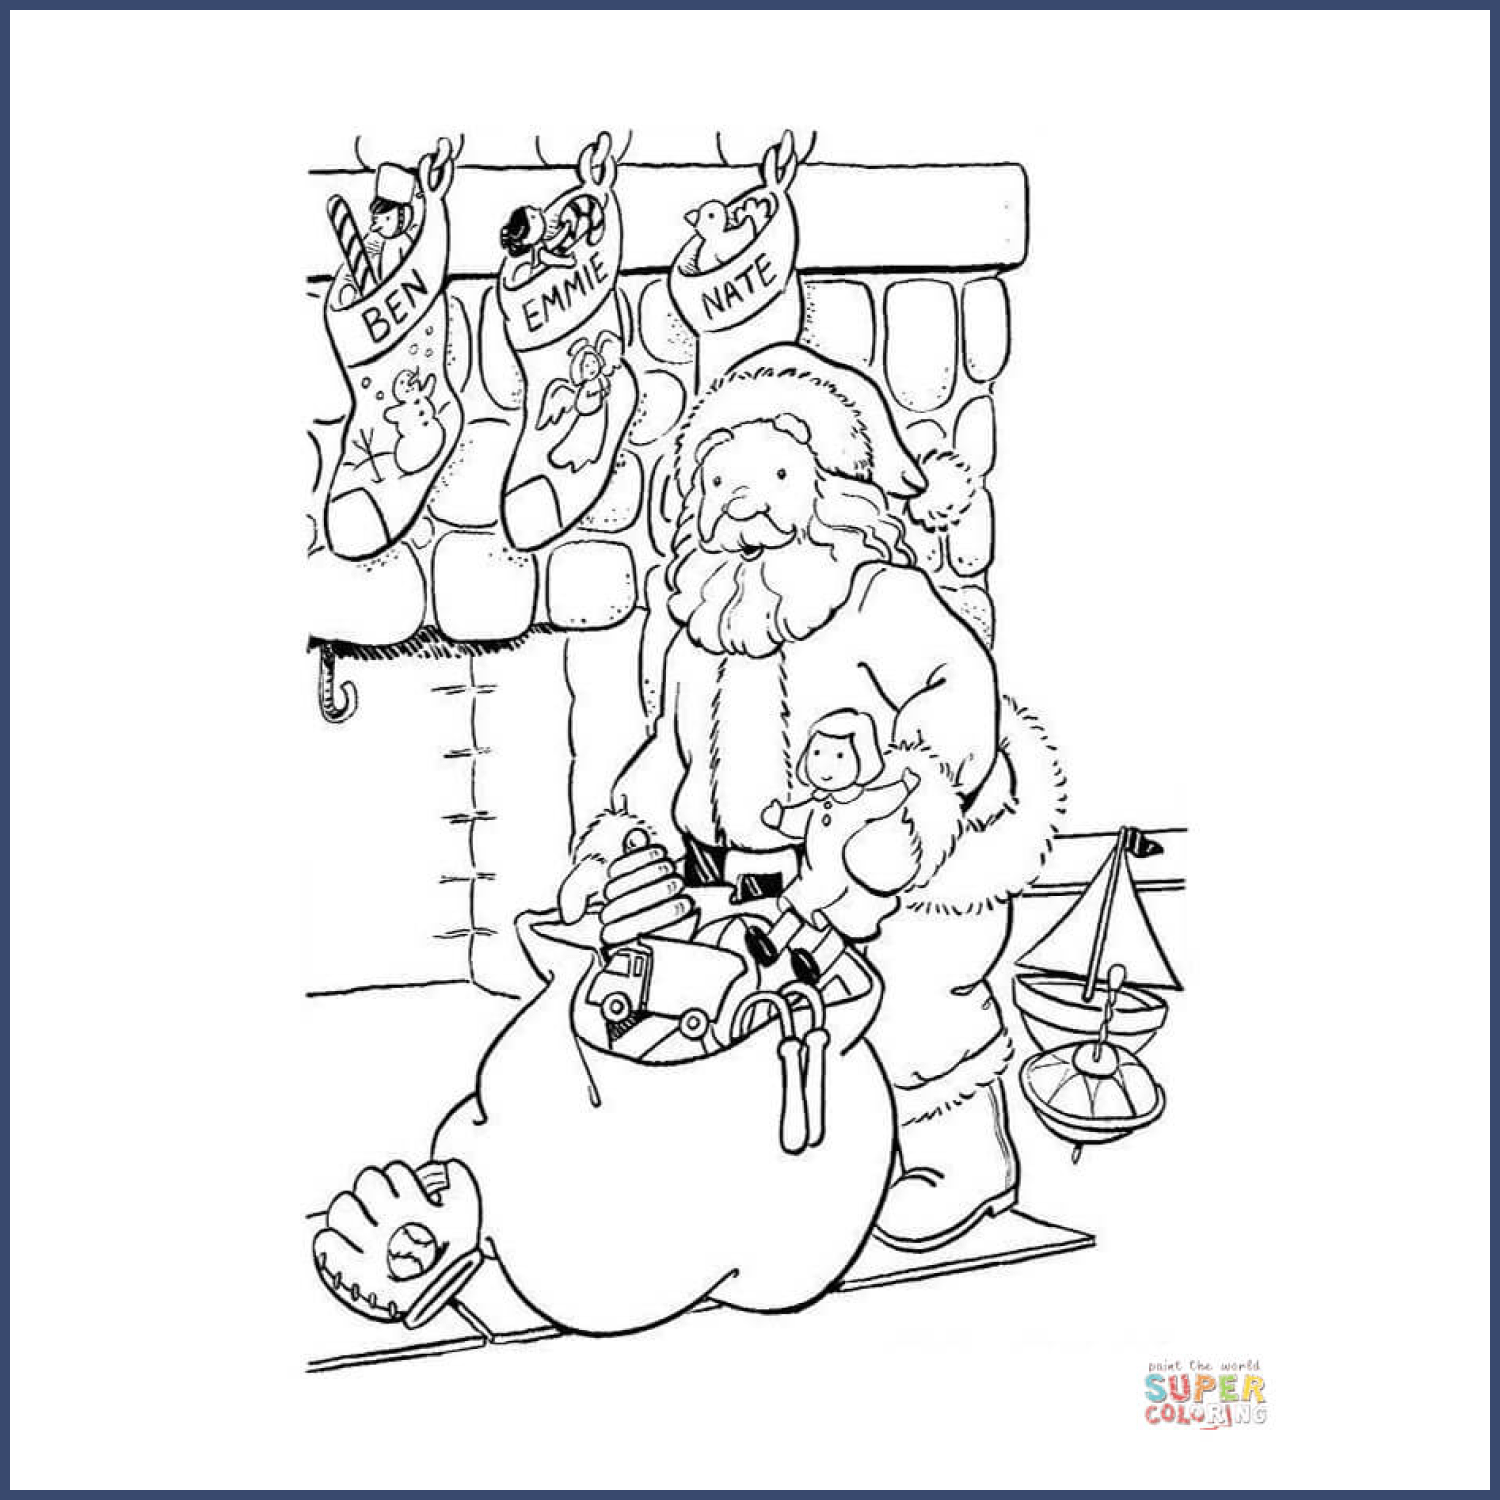 Everyone Will Get His Present coloring page cover image.